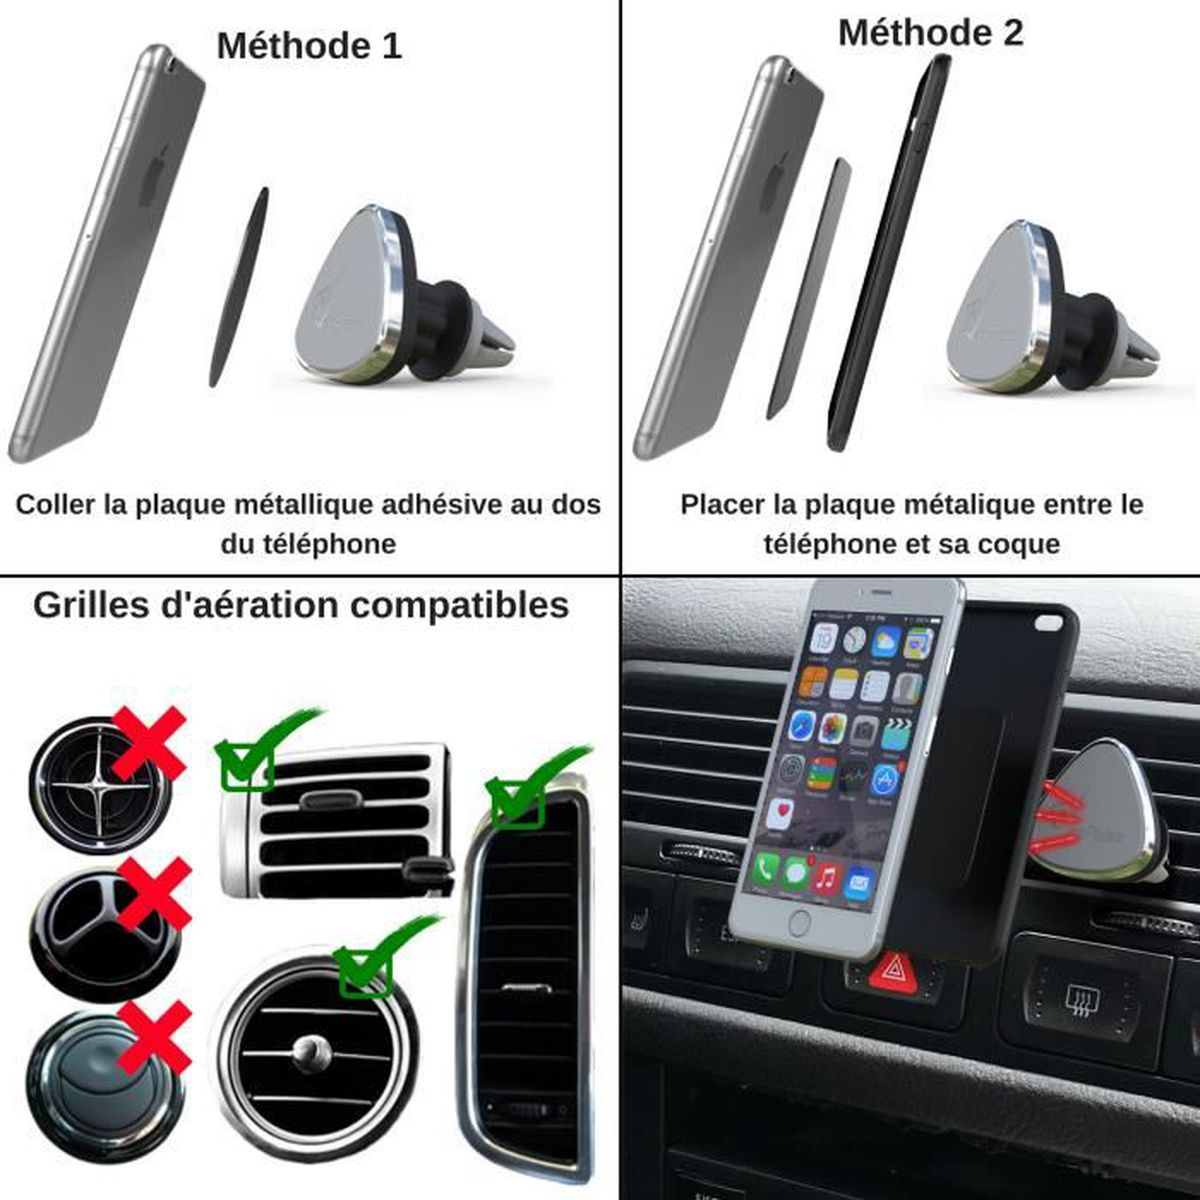 VeoPulse Support téléphone UNIVERSEL pour voiture- IPHONE SAMSUNG WIKO  HUAWEI SONY NOKIA - Porte mobile 360°- Tous smartphones - Achat fixation -  support ... fc2a3c4d5705